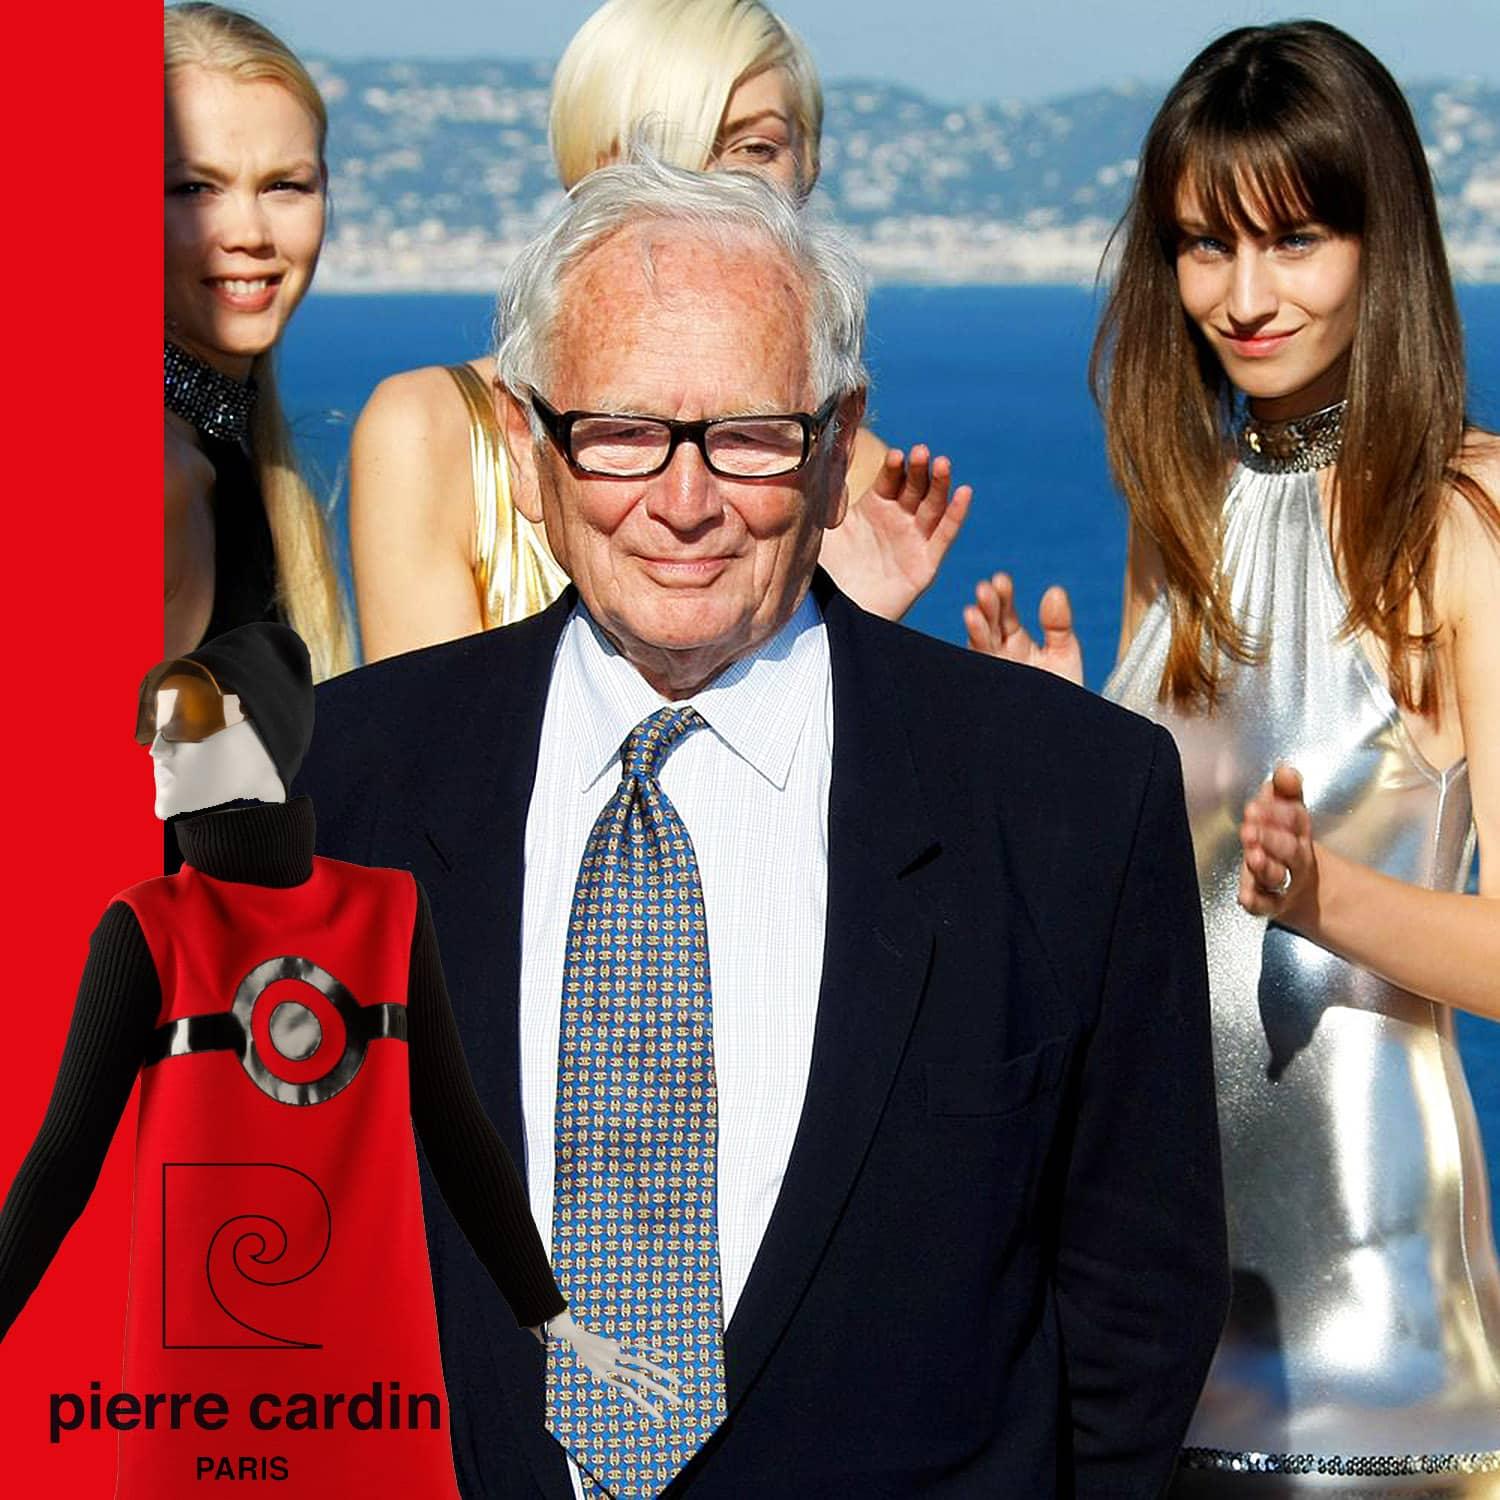 Pierre Cardin died 29 December 2020 - tribute by RUNWAY MAGAZINE